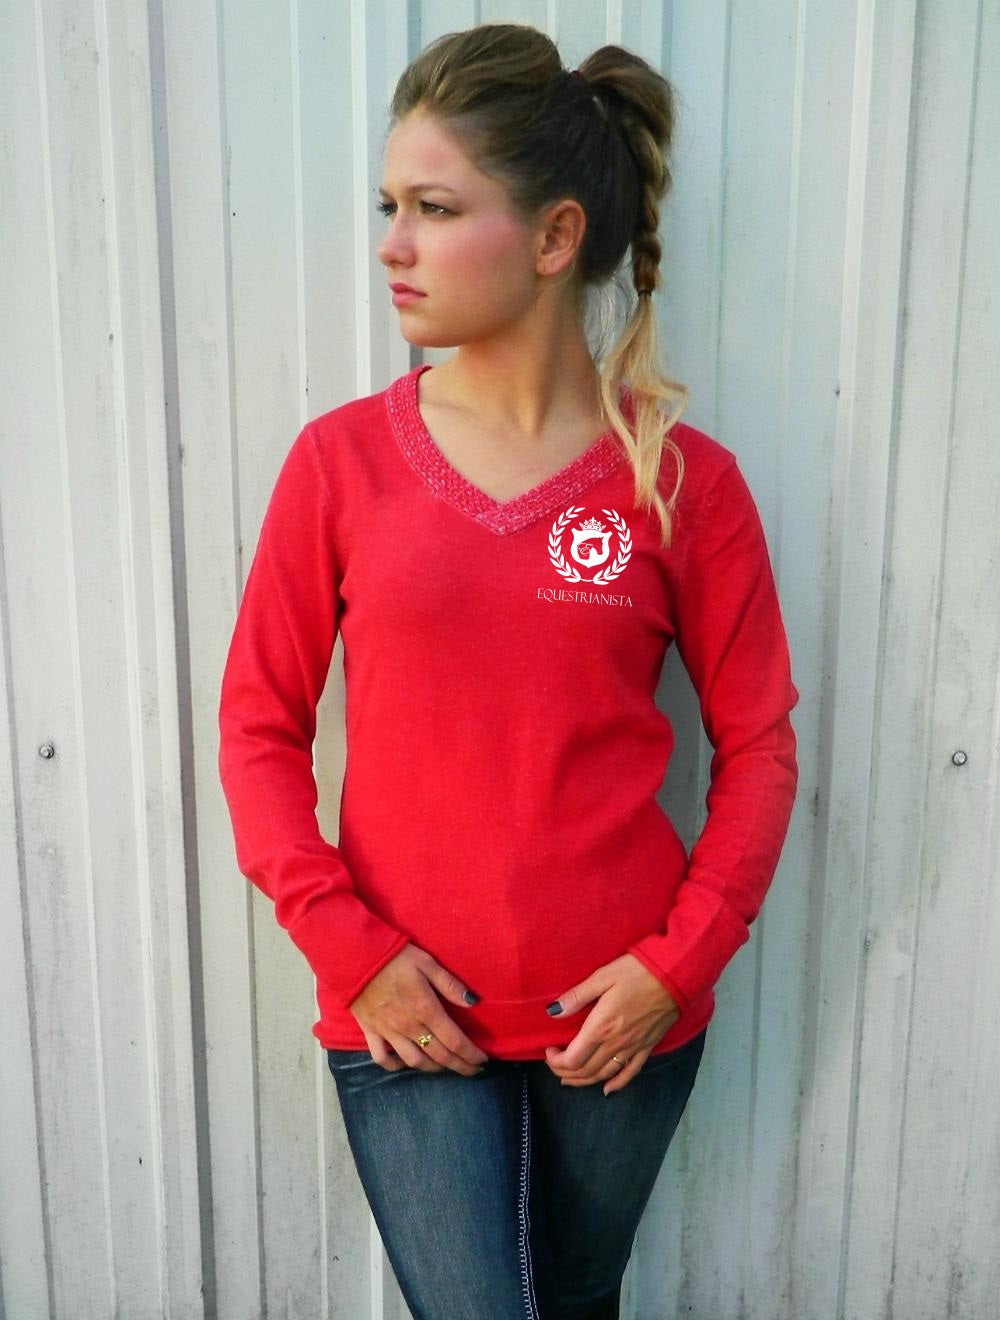 Equestrian Barn Day V-Neck Cotton Sweater in Red by Equestrianista.